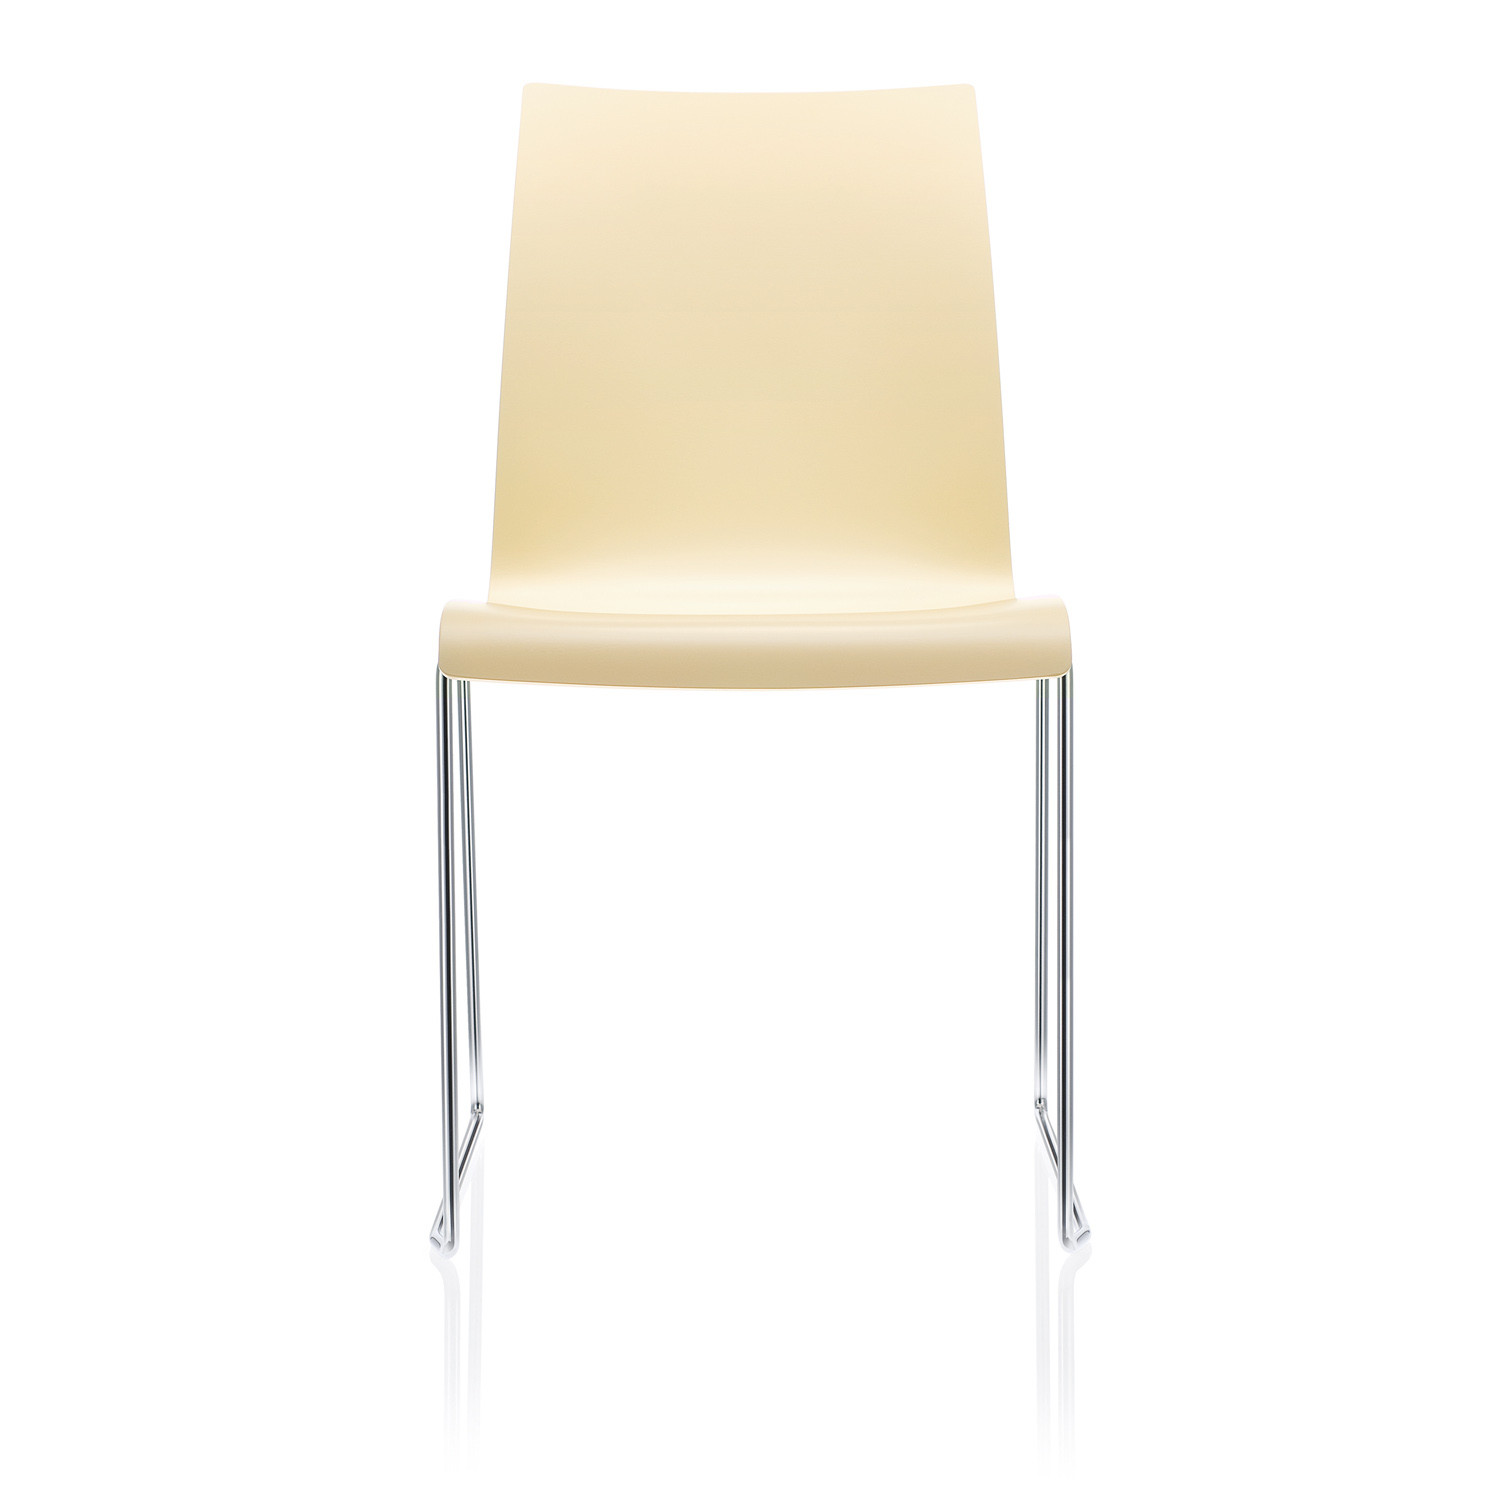 Fina Plastic Chair Breakout Chairs Apr S Furniture